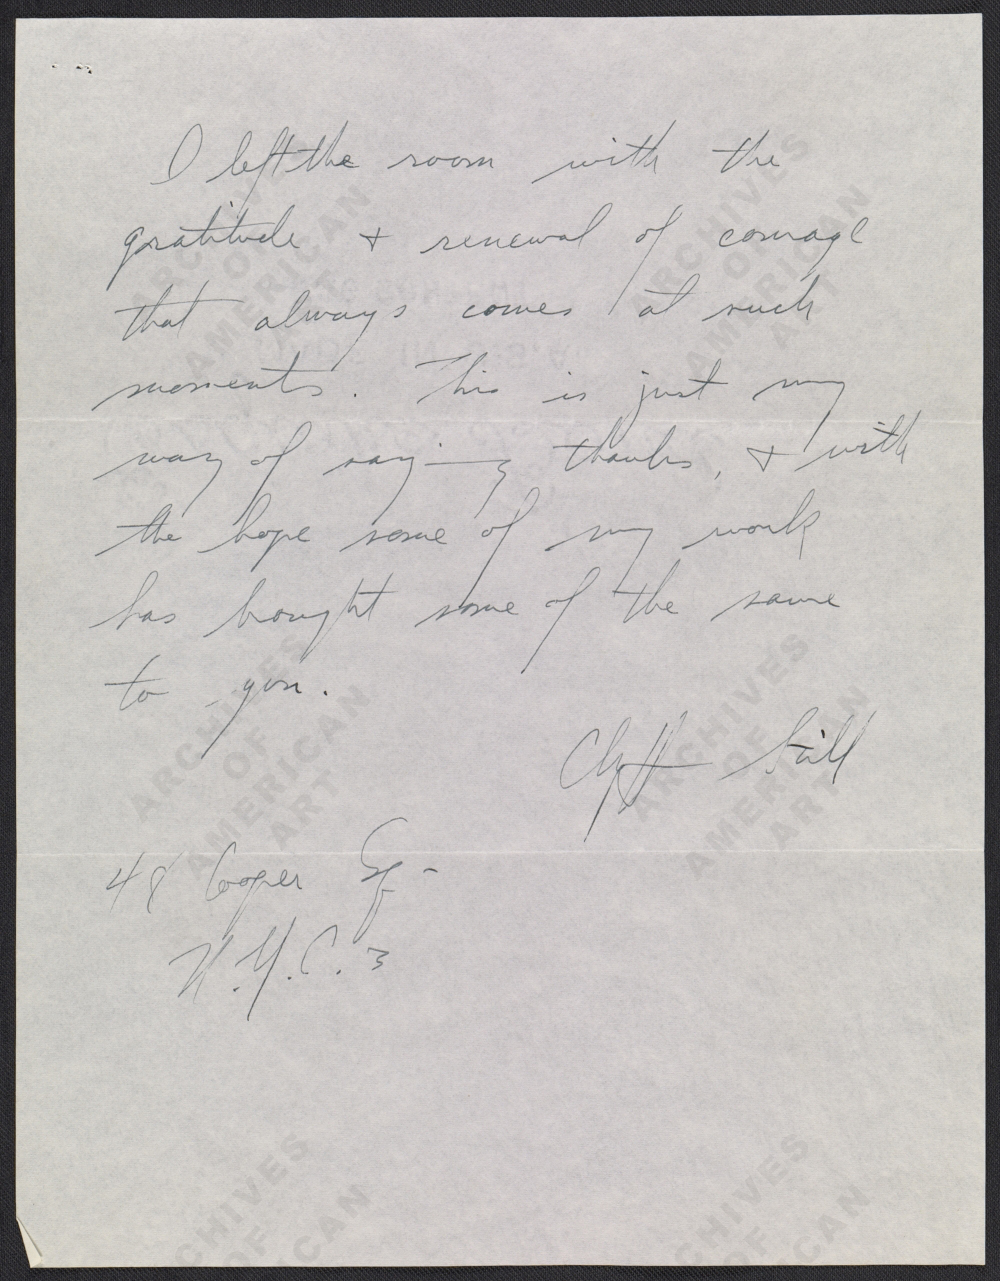 Letter from Clyfford Still to Jackson Pollock, page 2